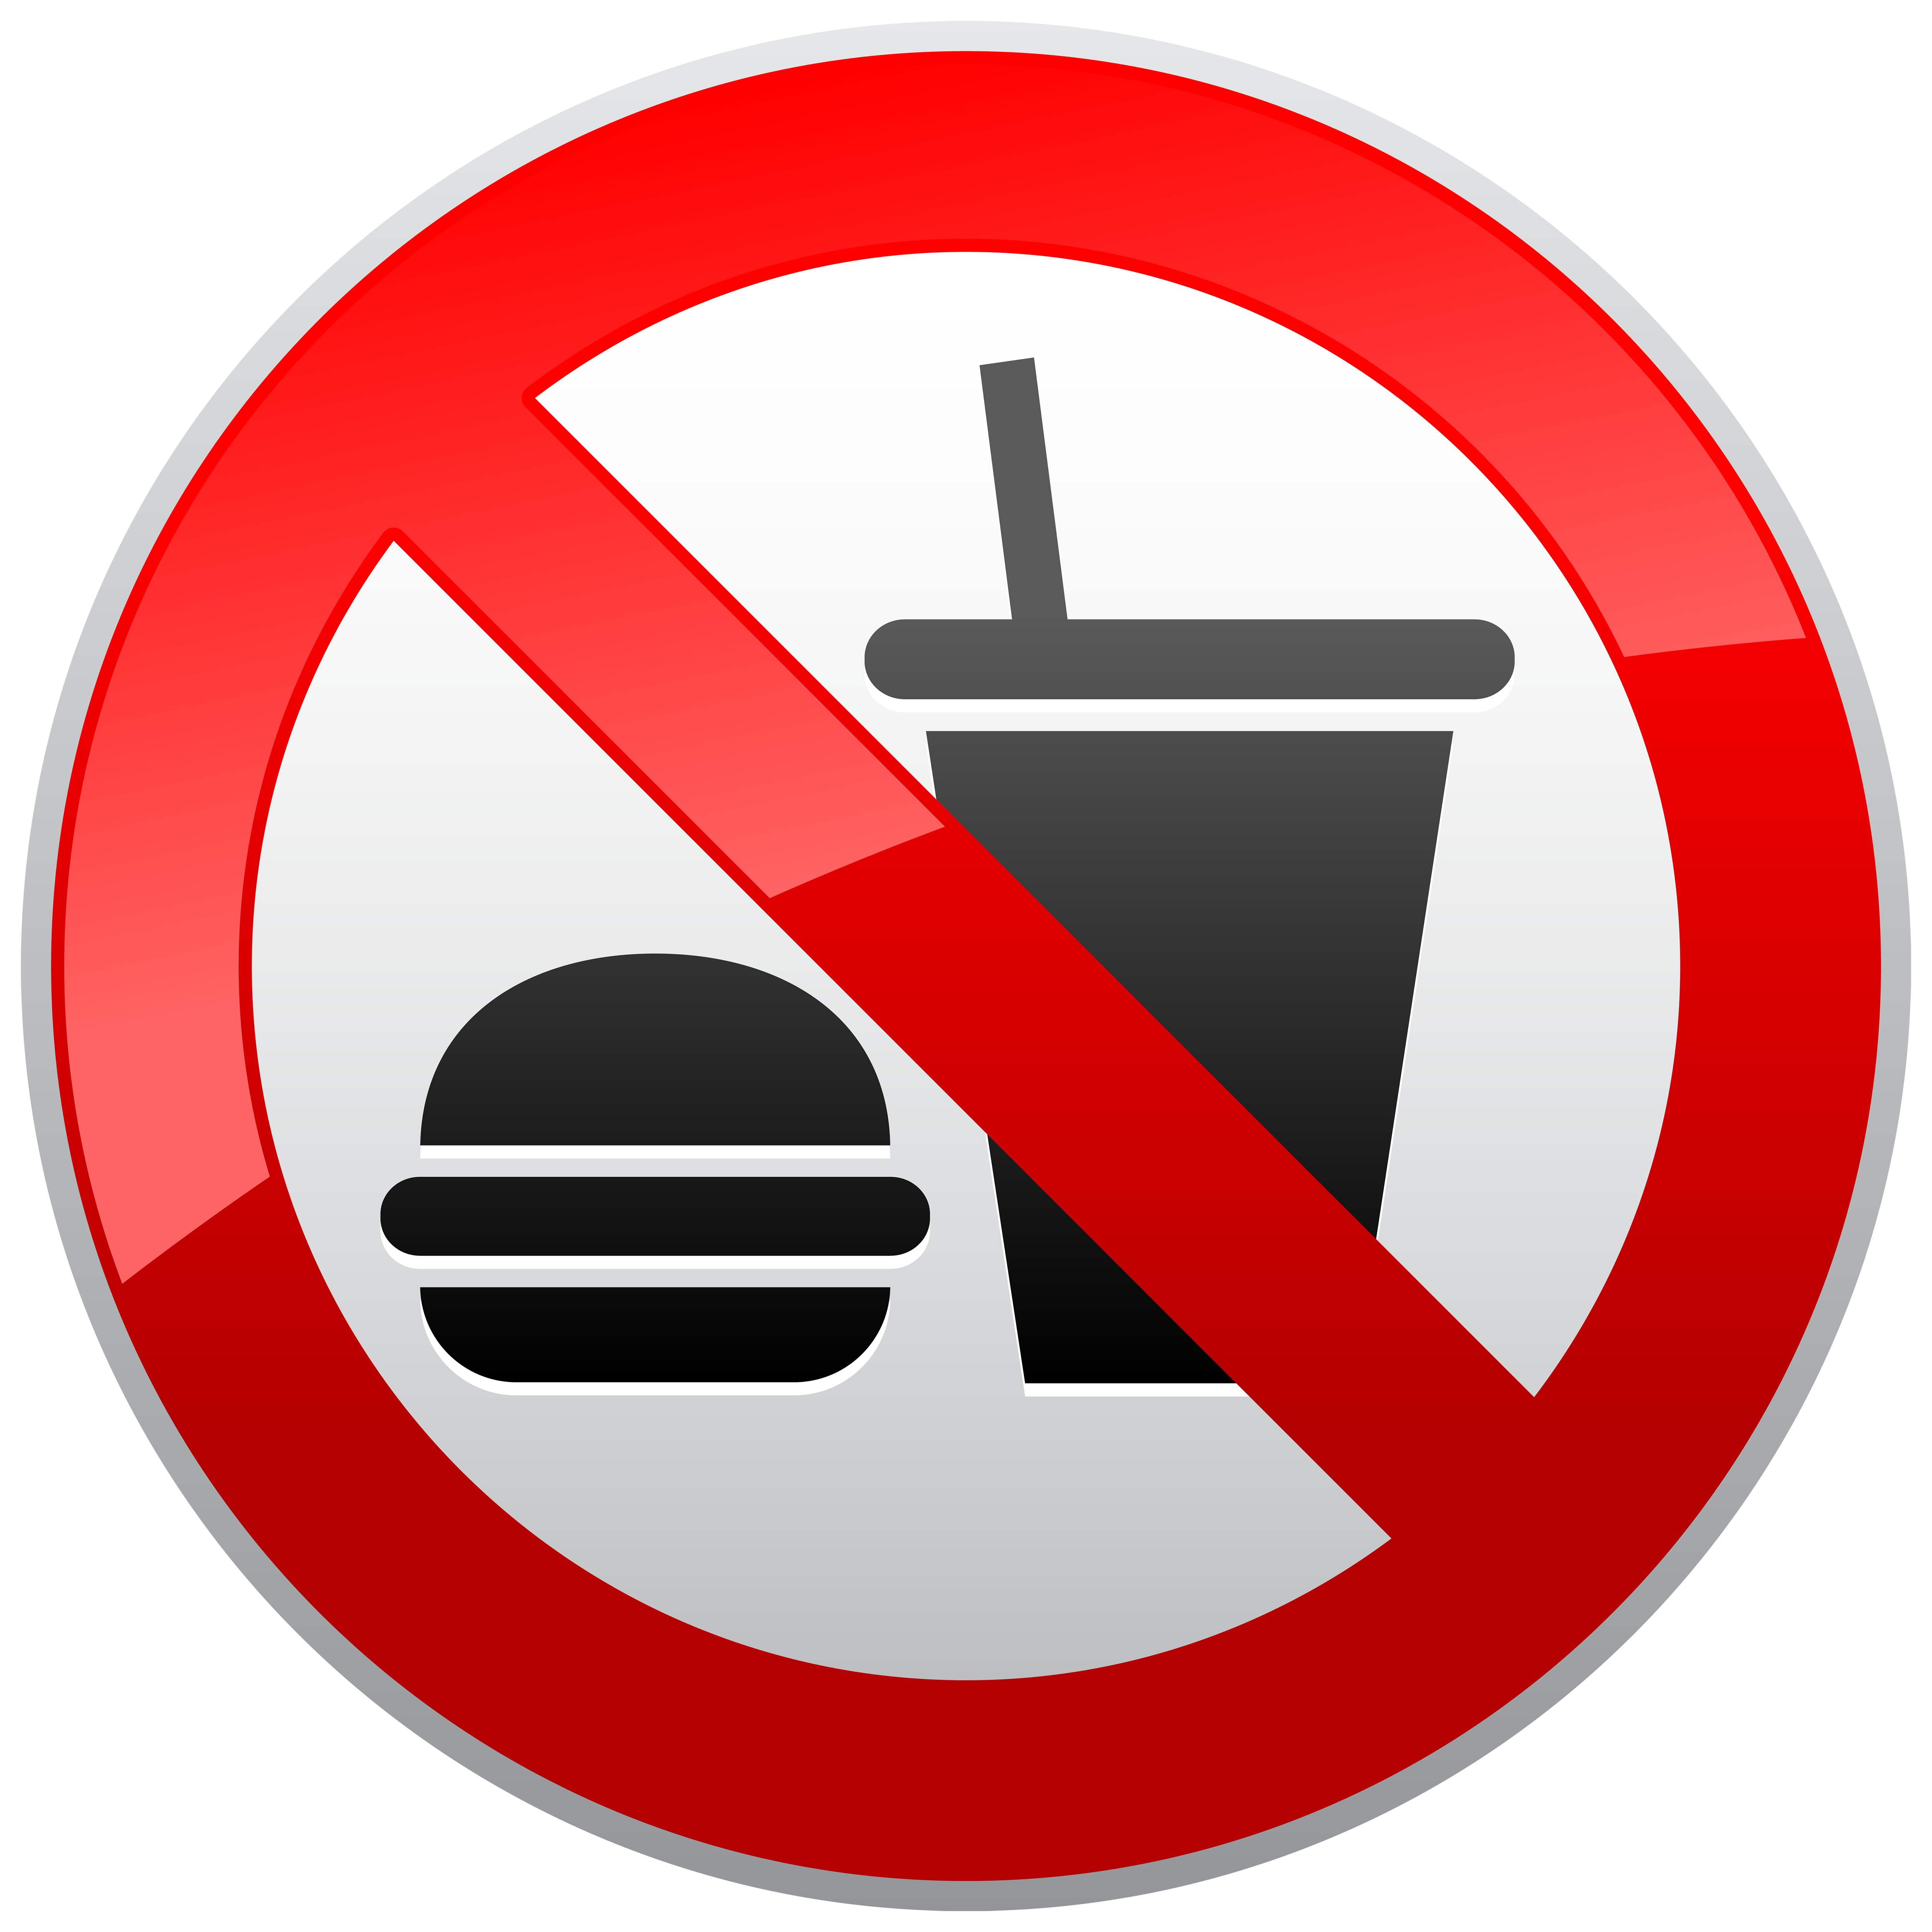 clip art freeuse download Waking clipart nights. No food or drink.